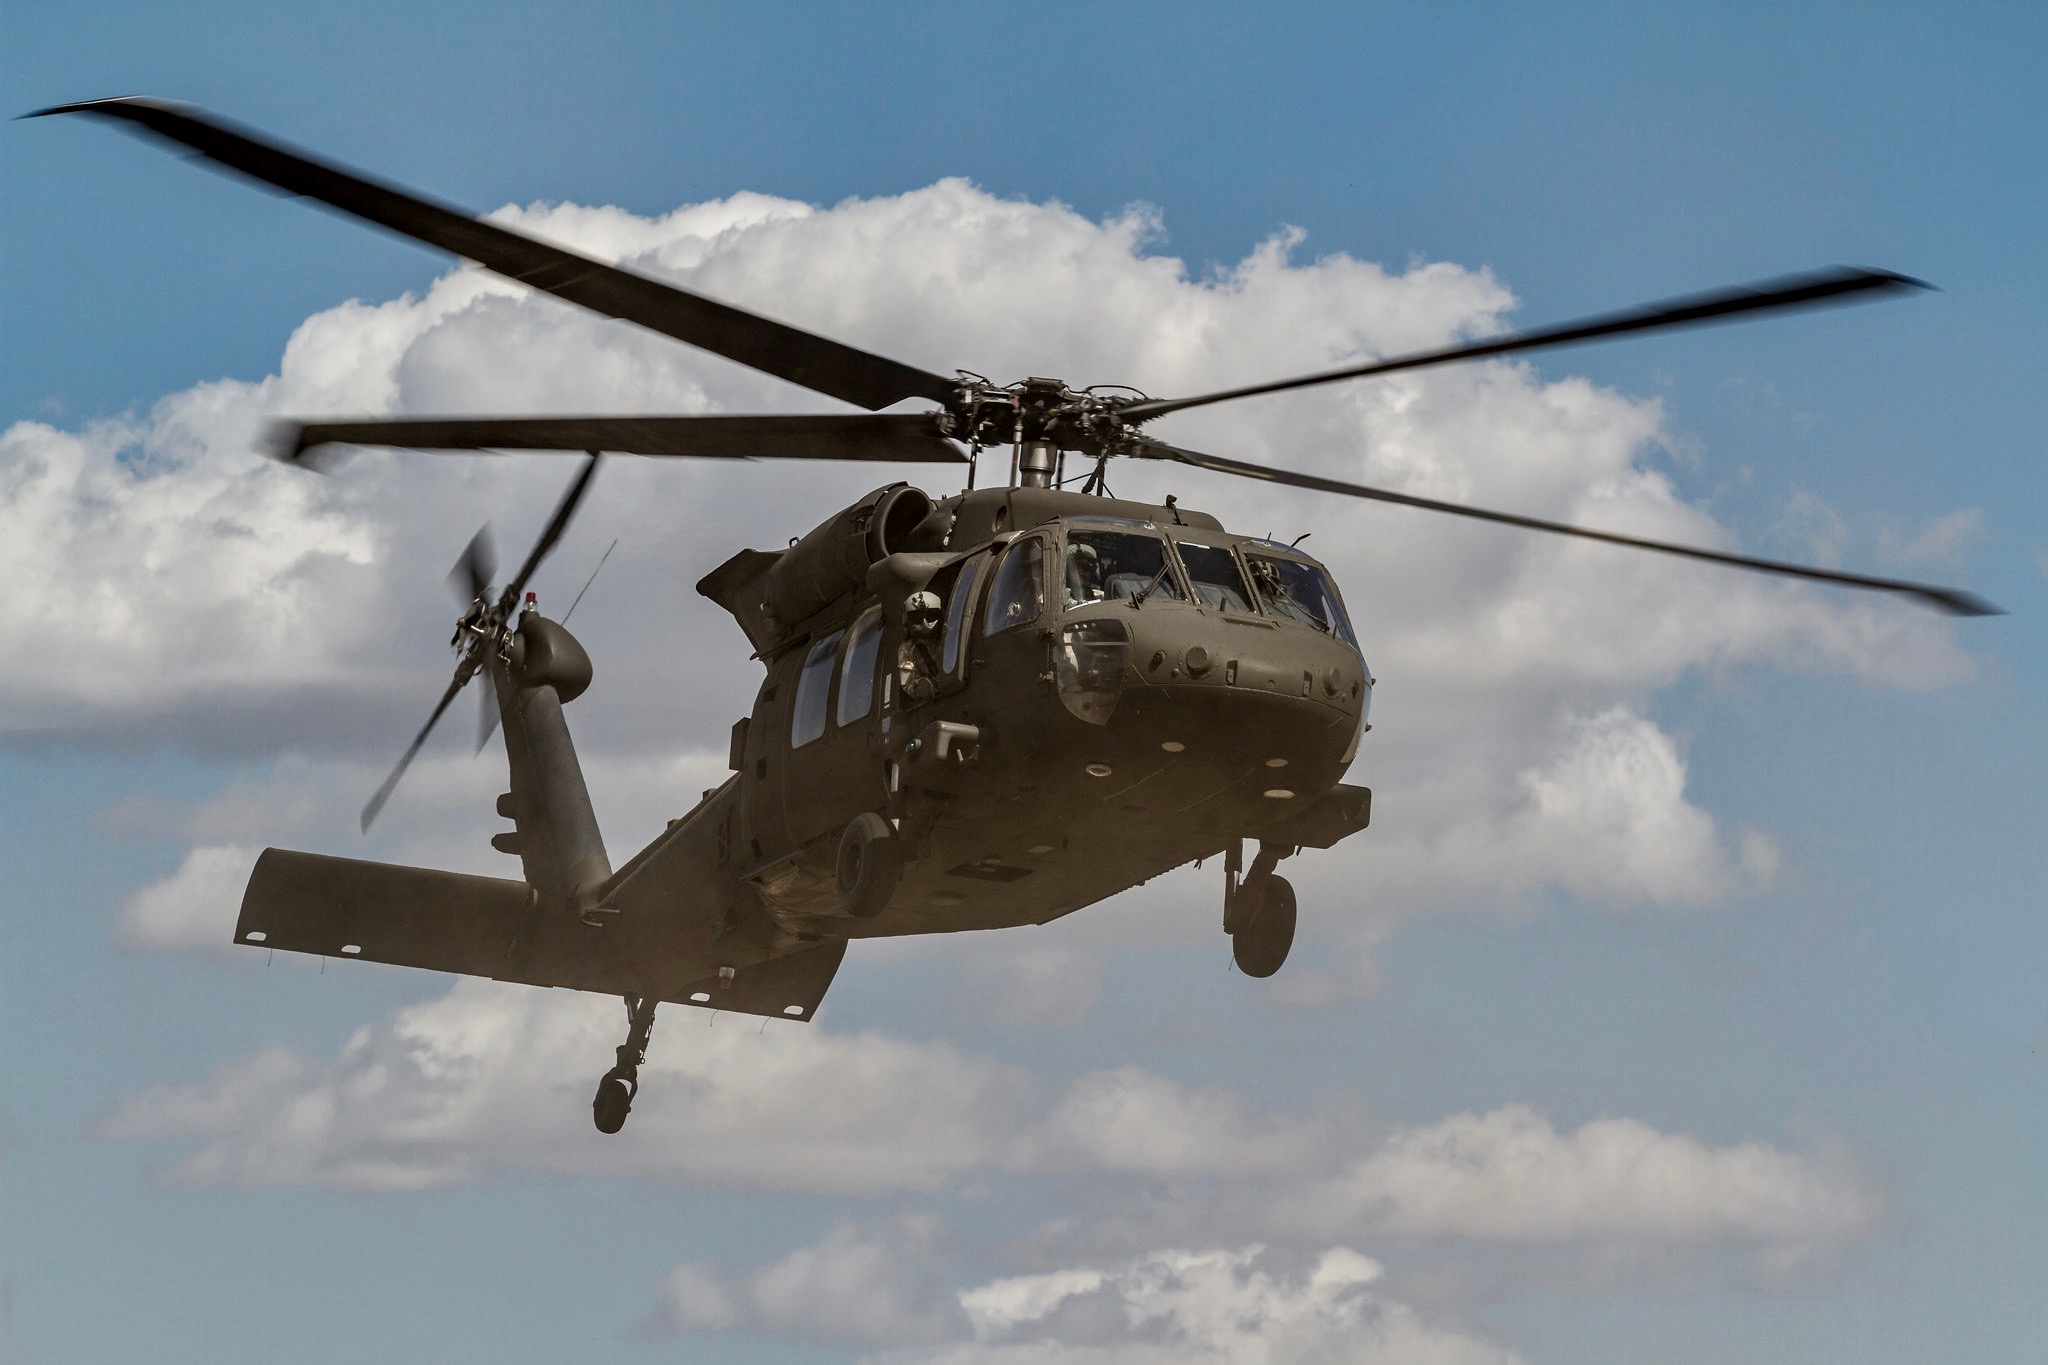 helicopter flight services with Army Confirms Black Hawk Drone Collided Over New York City on multiflight in addition Safran likewise Best Domestic Nigerian Airlines further Airbus Helicopters Showcases H135 Helionix At Heli Expo Alongside The Ever Popular H145 And H130 additionally Article 8ebd12c5 17a5 597b 9212 A986bec02787.